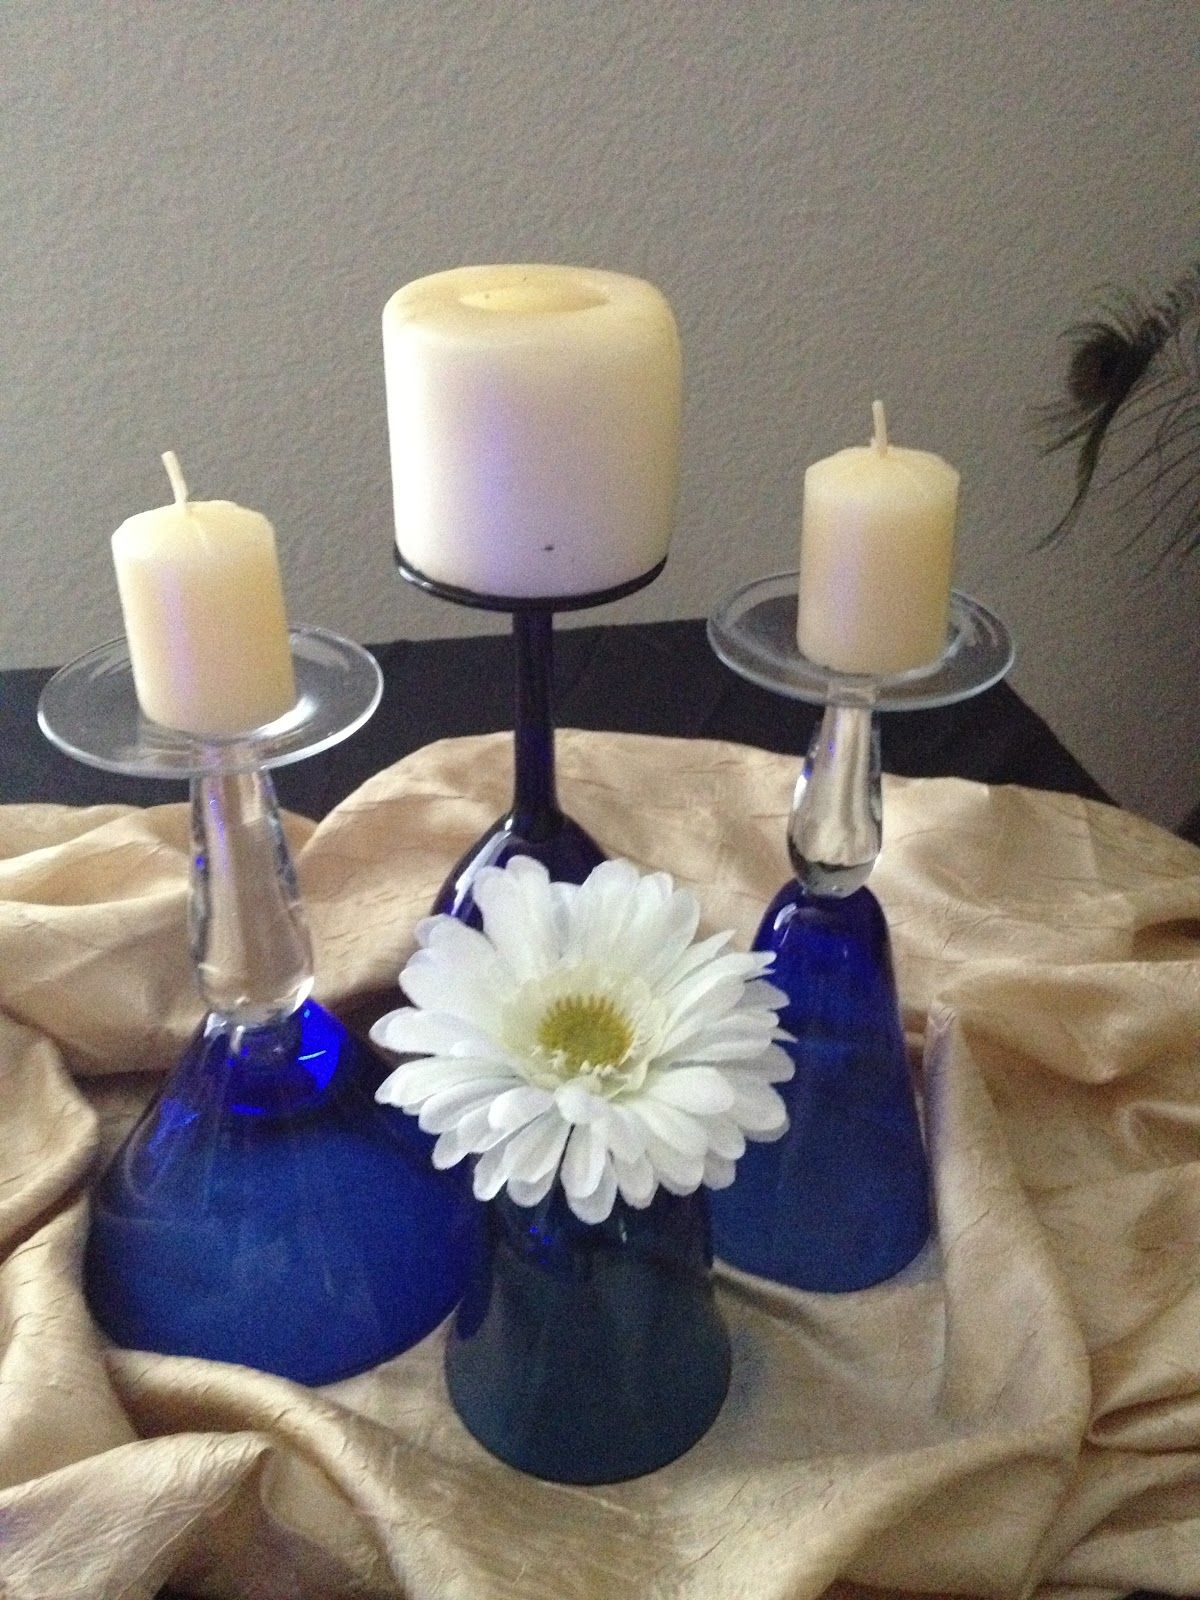 Glasses for centerpiece flowers in wine glass